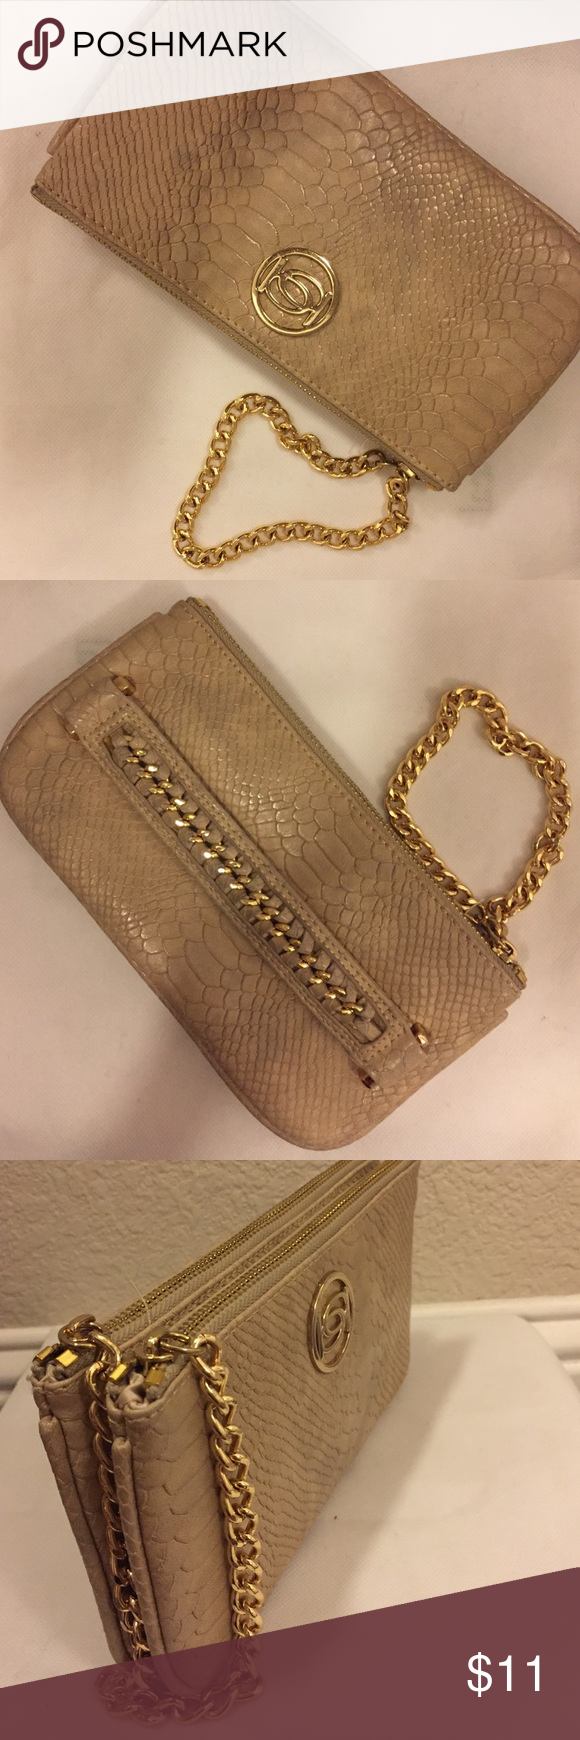 💥BLOWOUT SALE💥! BEBE clutch BEBE clutch/ writlet. Two separate pocket zipper. One side has another zippy inside. You can slide your four fingers in the slot on the side and hold it by your thighs facing out or you can just carry it by the chain bebe Bags Clutches & Wristlets